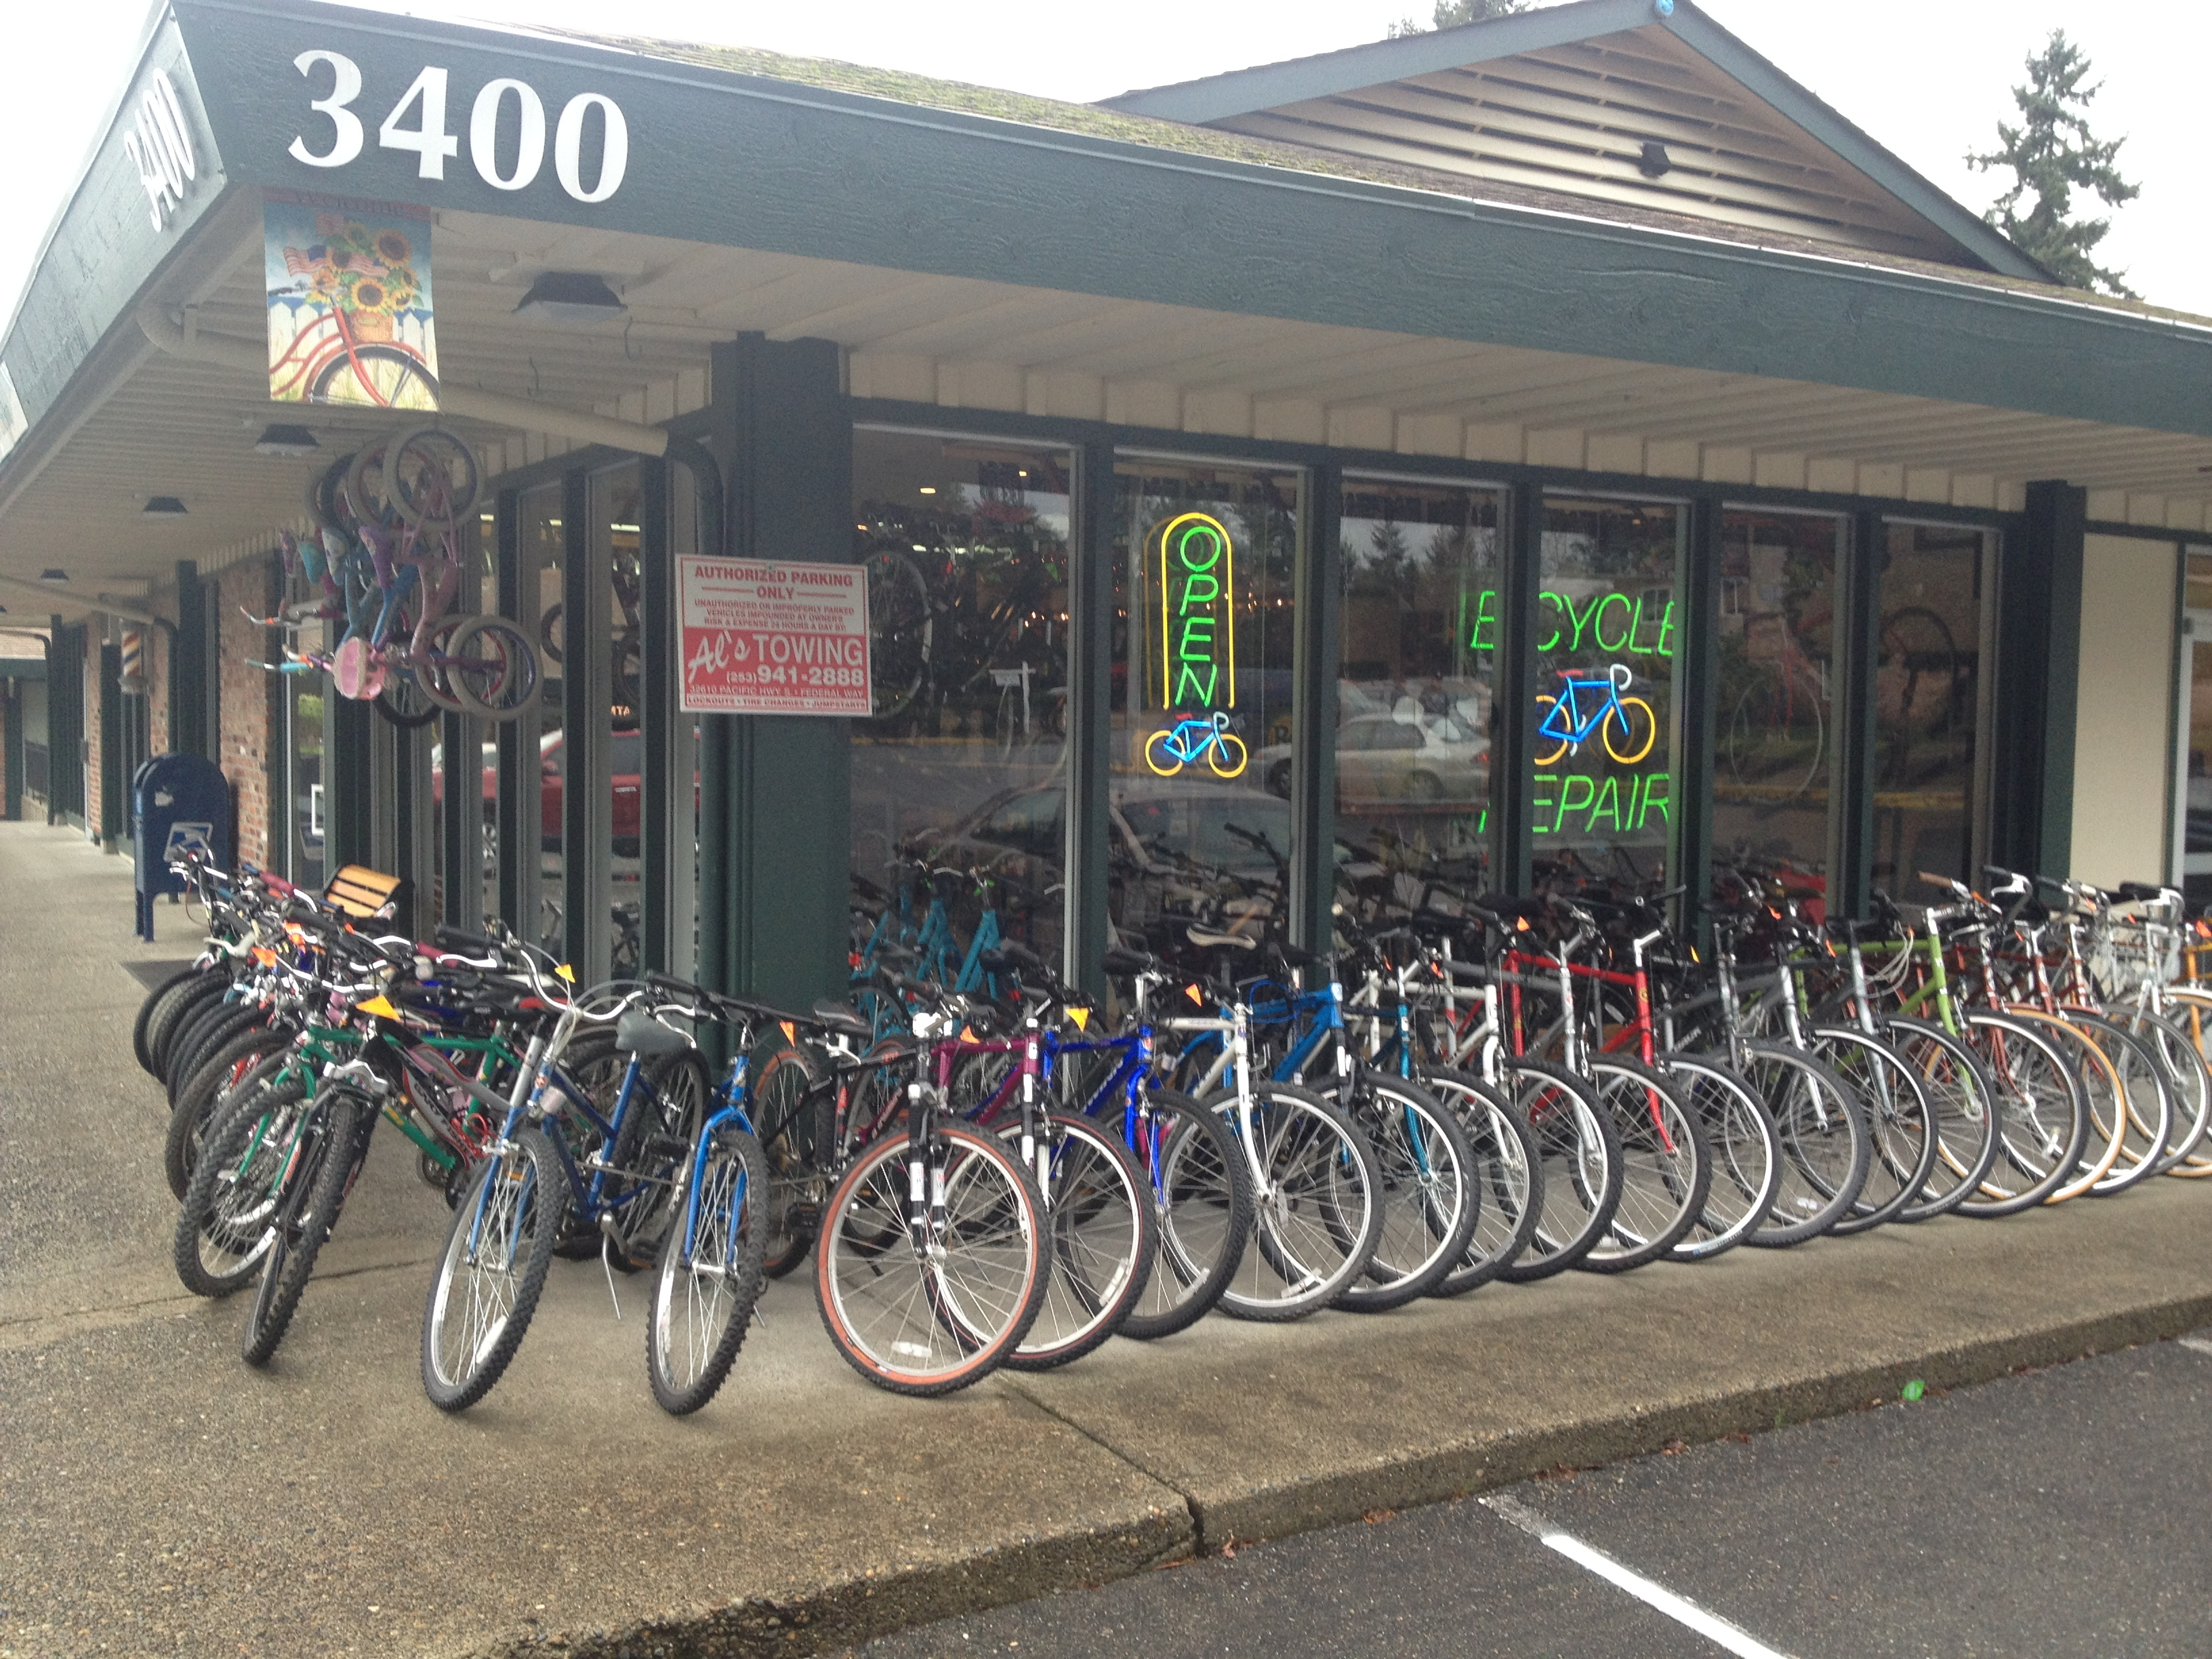 USED Bikes | Phil's Bike Shop